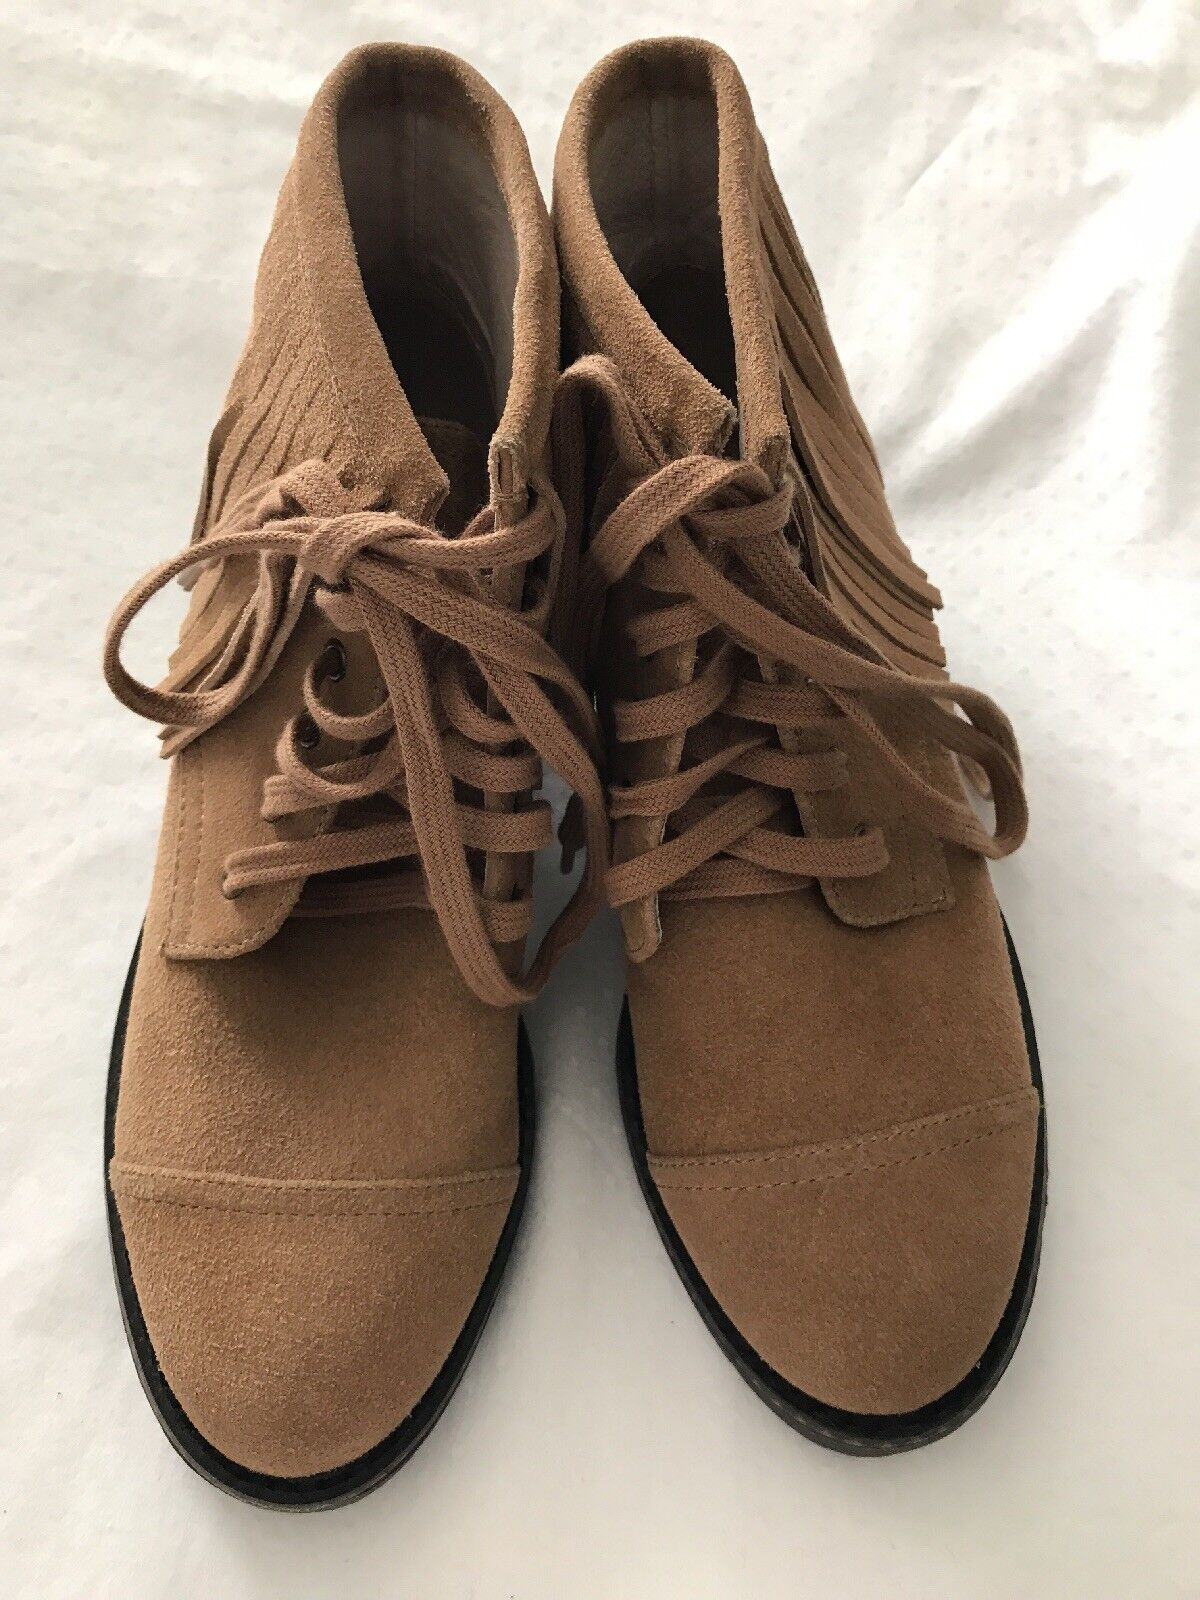 Brand New House Of Harlow 1960 Suede Boots With Fringes Size 7